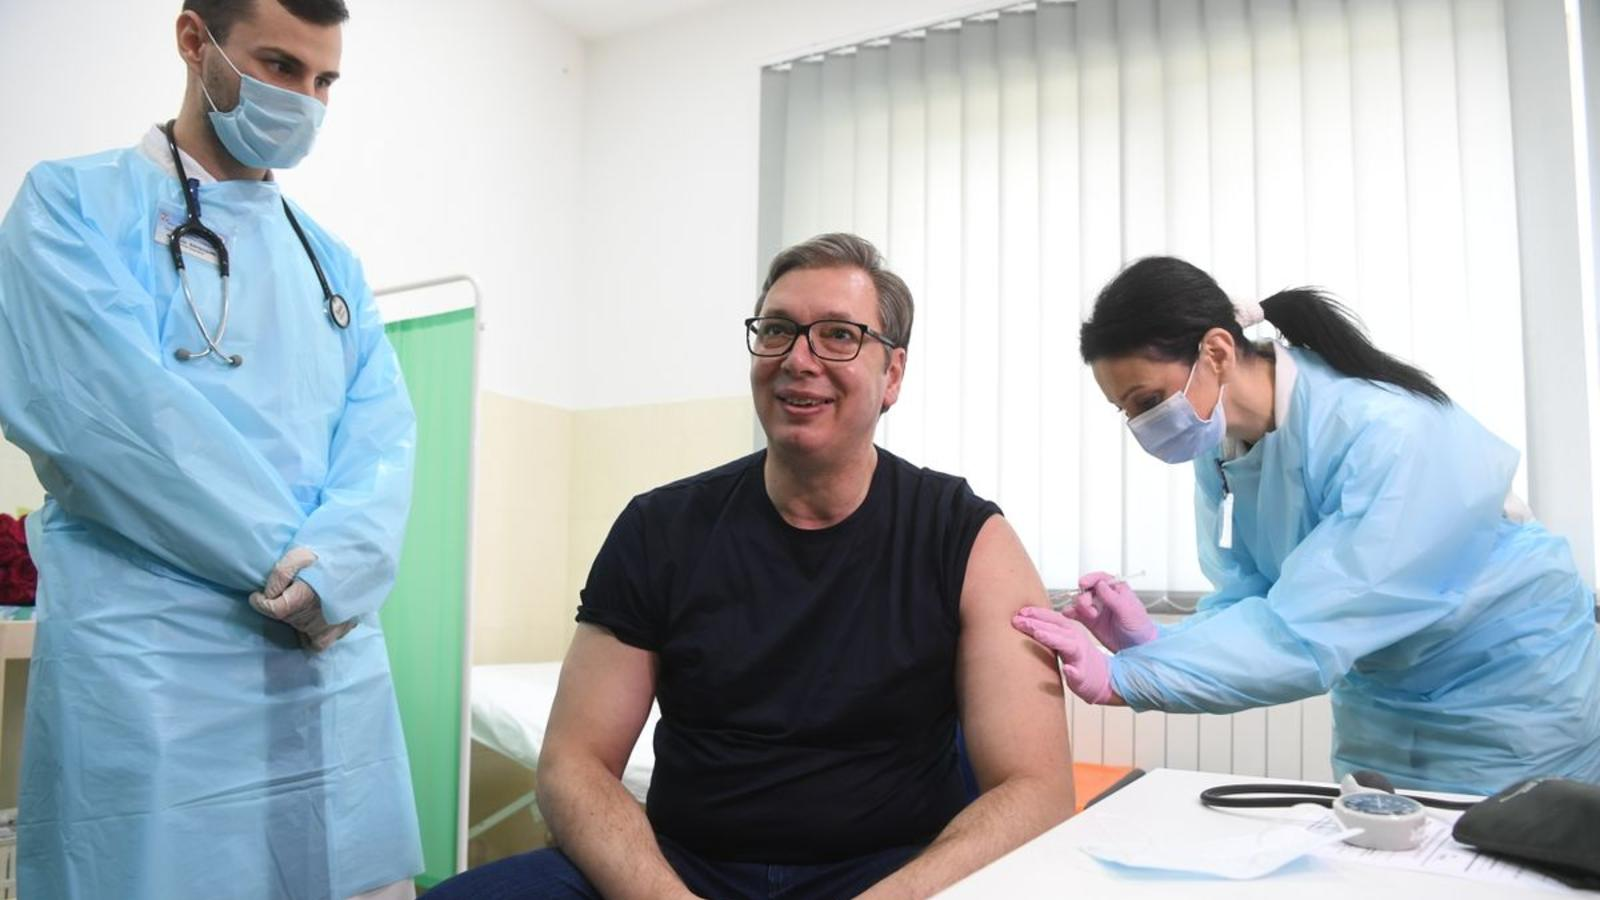 Photo: President Vučić receives a vaccine in Rudna Glava. Credit: Presidency of Serbia / Dimitrije Goll